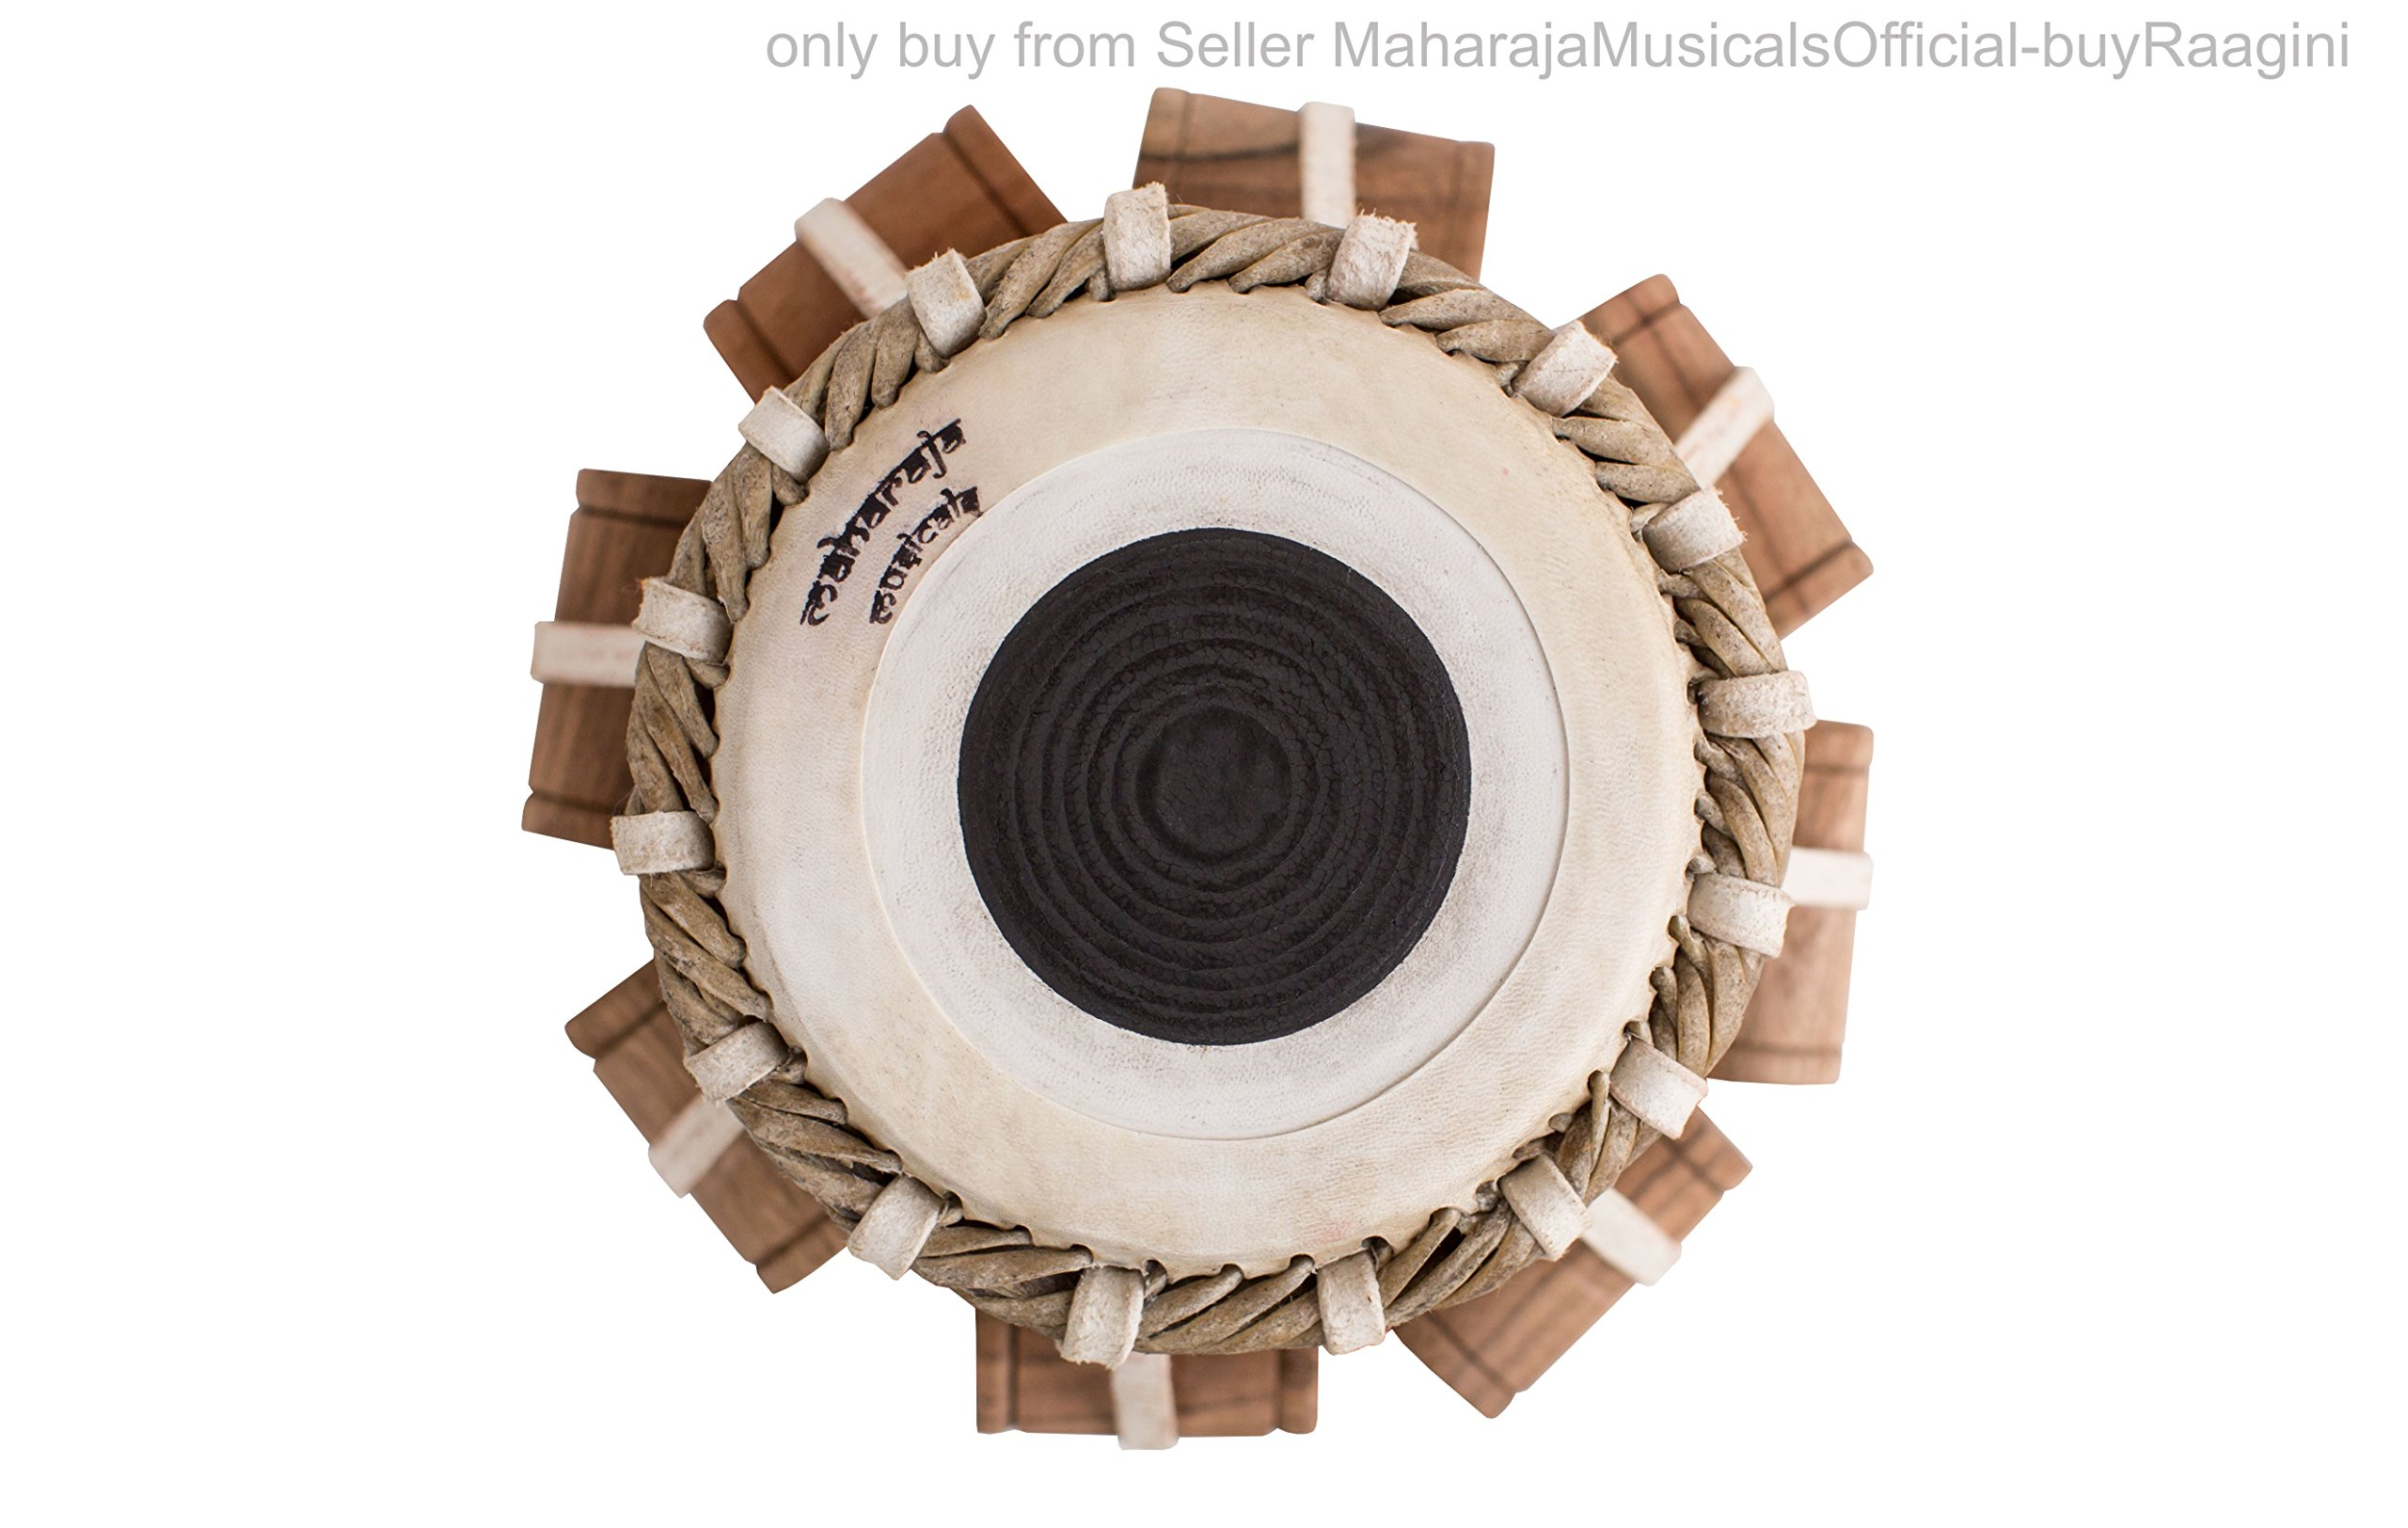 MAHARAJA Student Tabla Drum Set, Basic Tabla Set, Steel Bayan, Dayan with Book, Hammer, Cushions & Cover - Perfect Tablas for Students and Beginners on Budget (PDI-IB) Tabla Drums, Indian Hand Drums by Maharaja Musicals (Image #8)